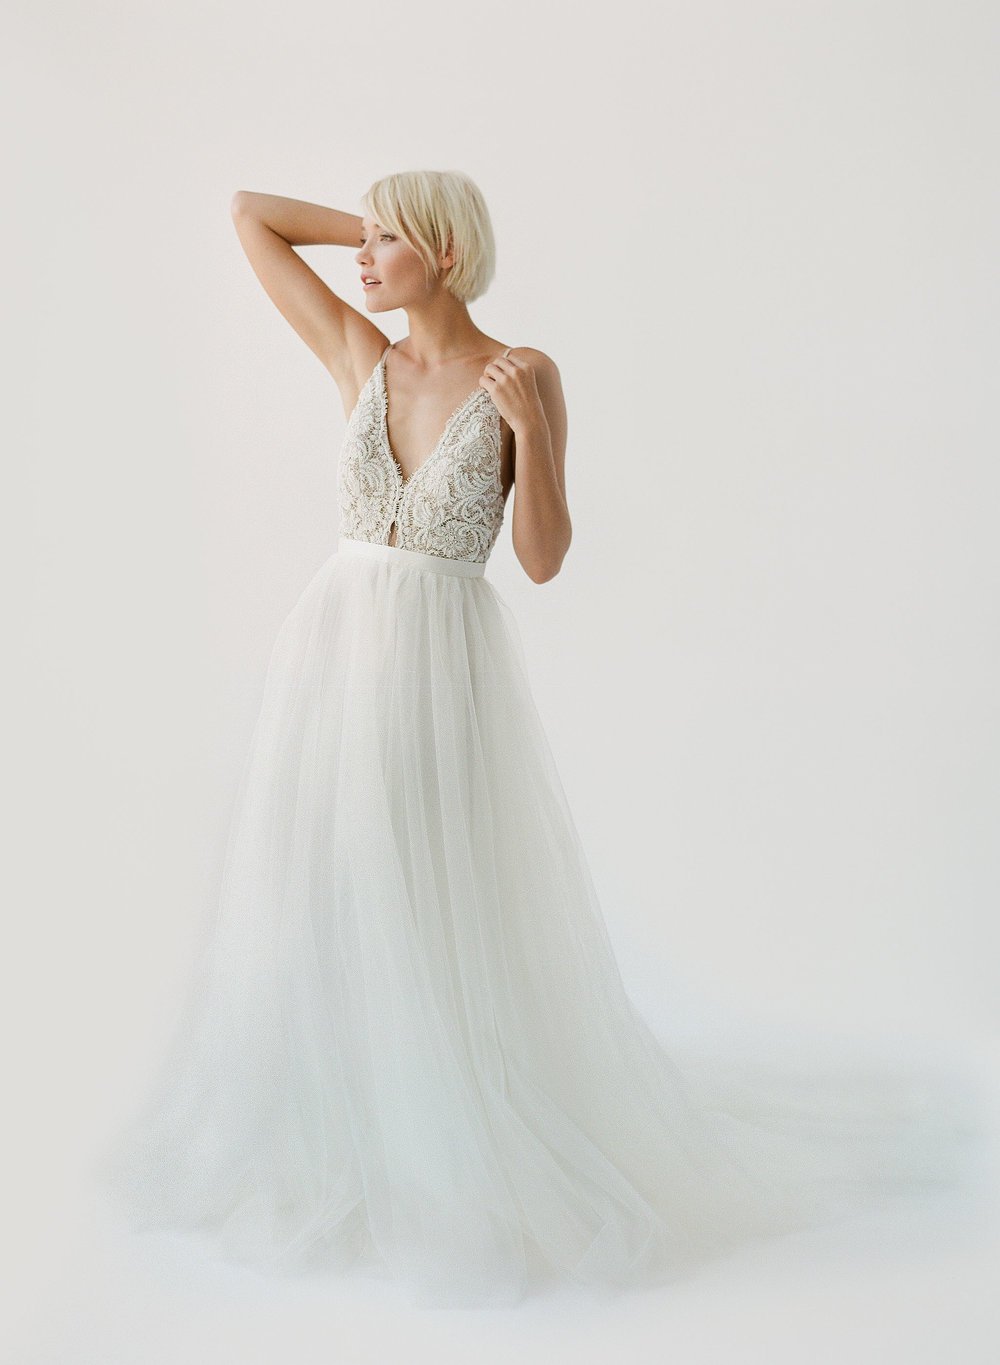 Truvelle 2019 bridal collection ireland